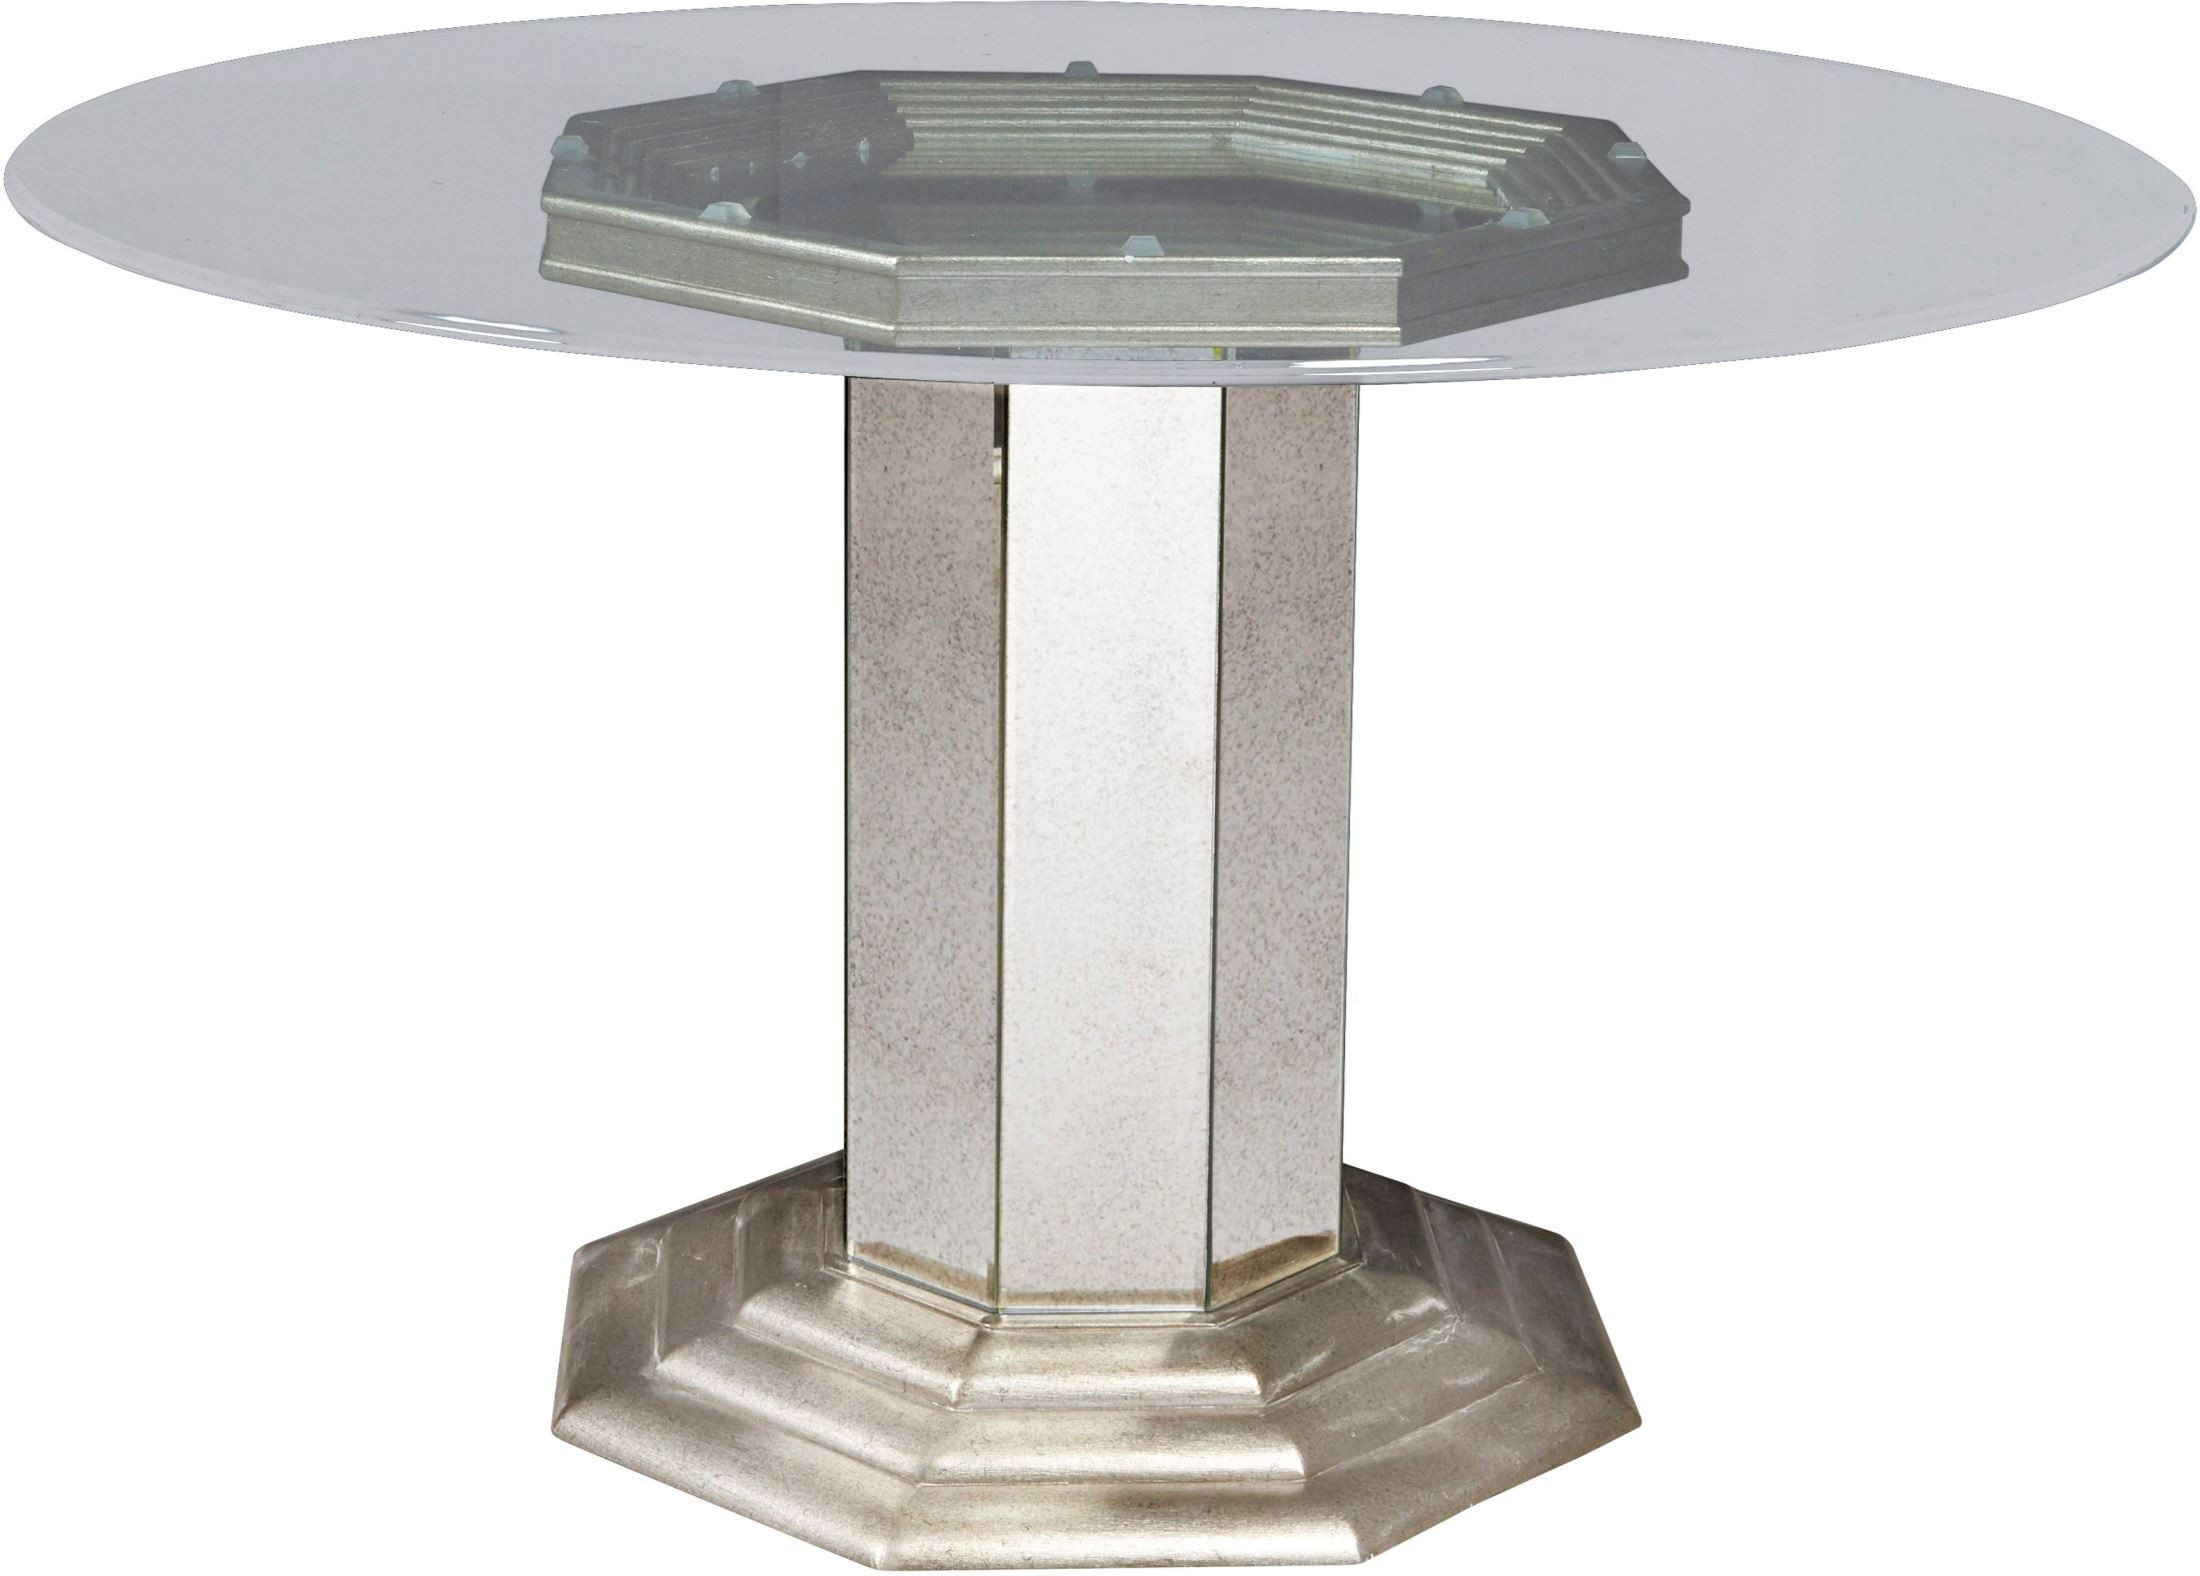 Couture silver round pedestal dining table p022230 31 for Round pedestal dining table